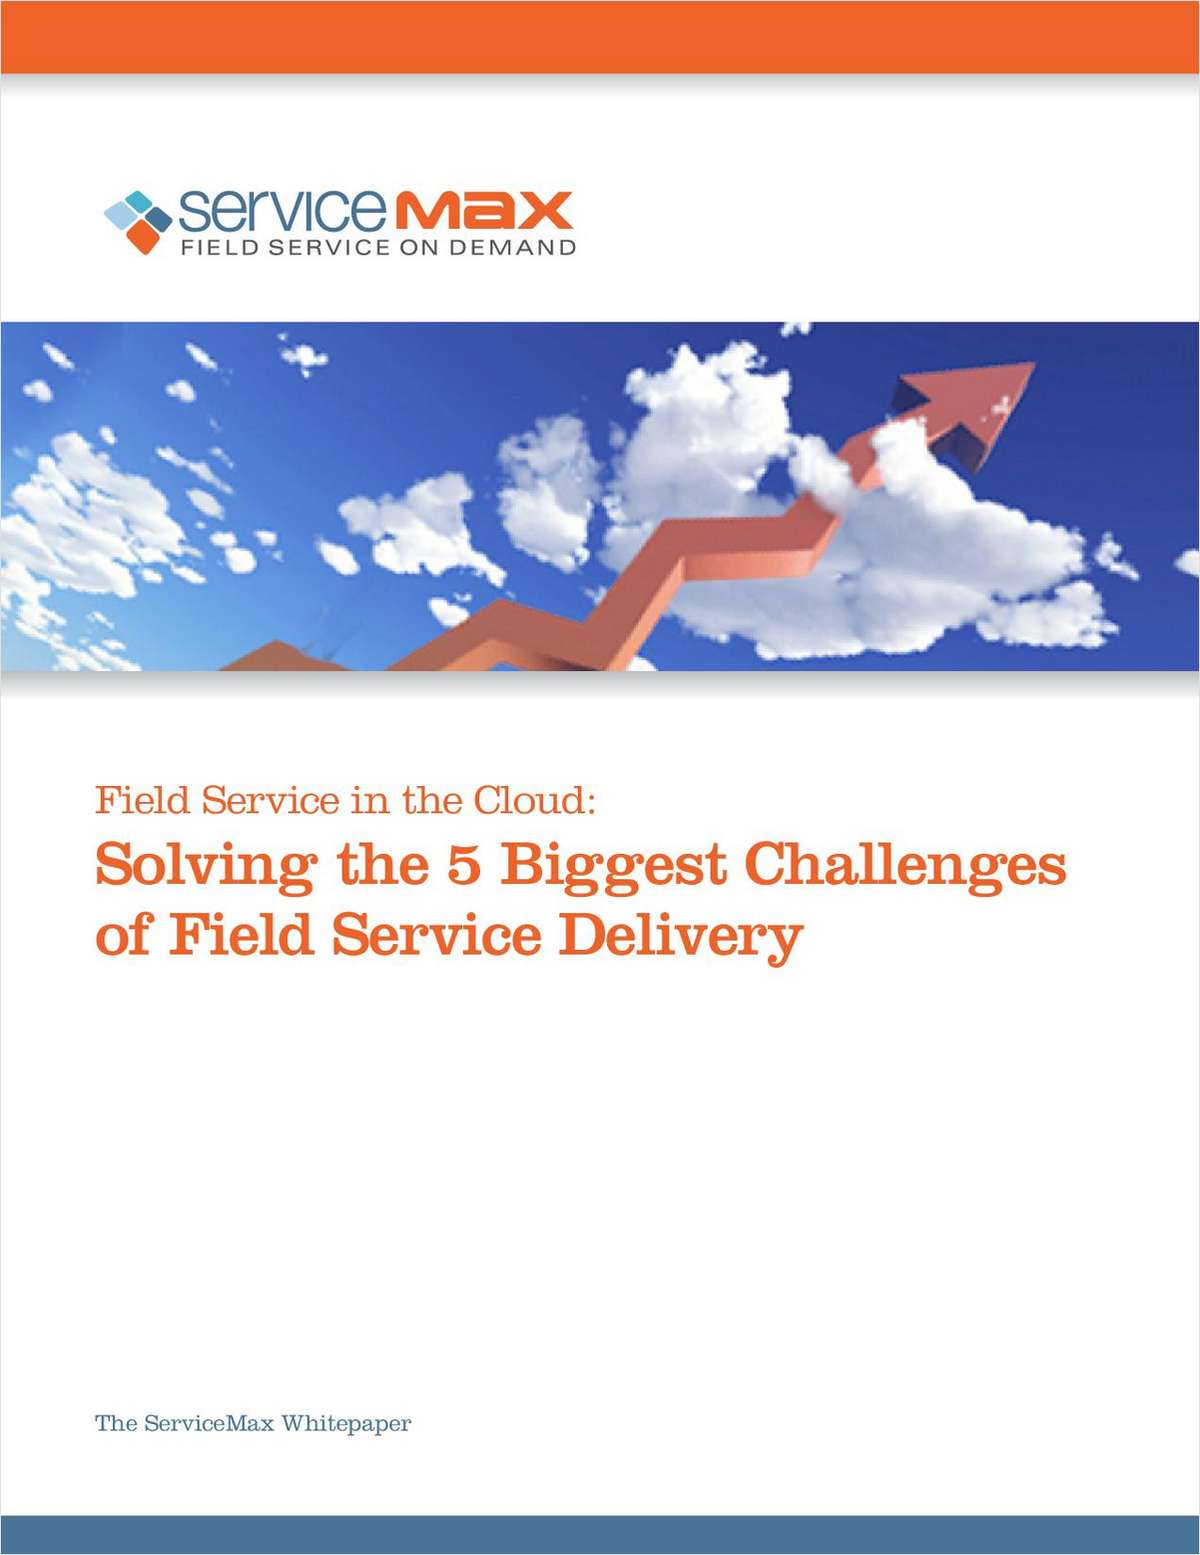 Solving the 5 Biggest Challenges of Field Service Delivery